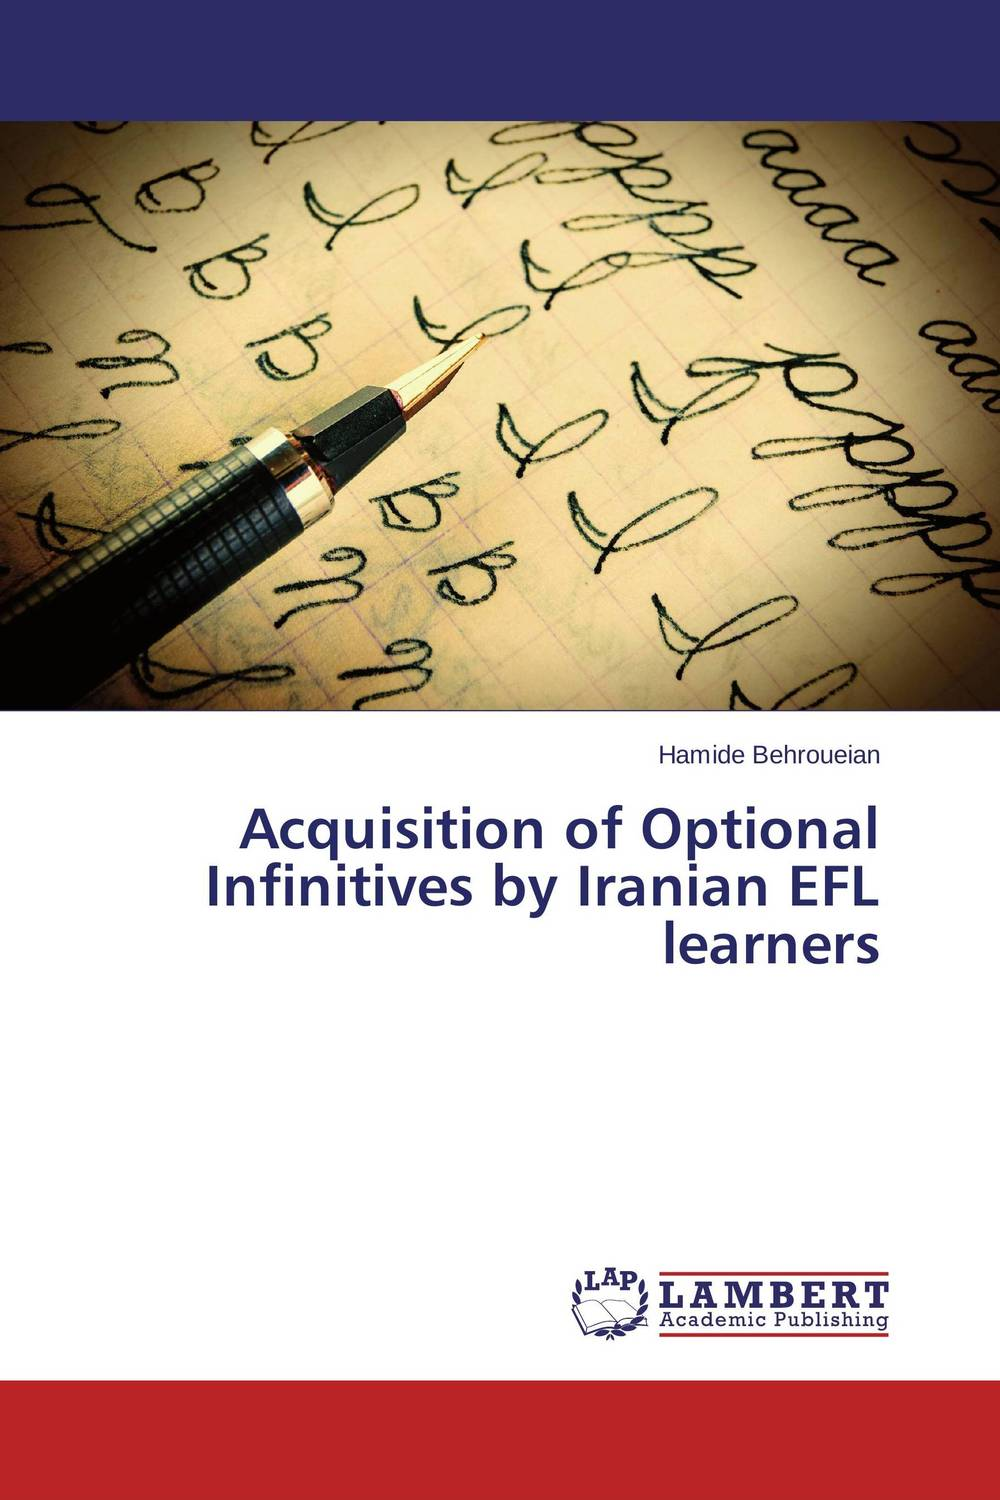 Acquisition of Optional Infinitives by Iranian EFL learners a study on english language proficiency of efl learners in bangladesh